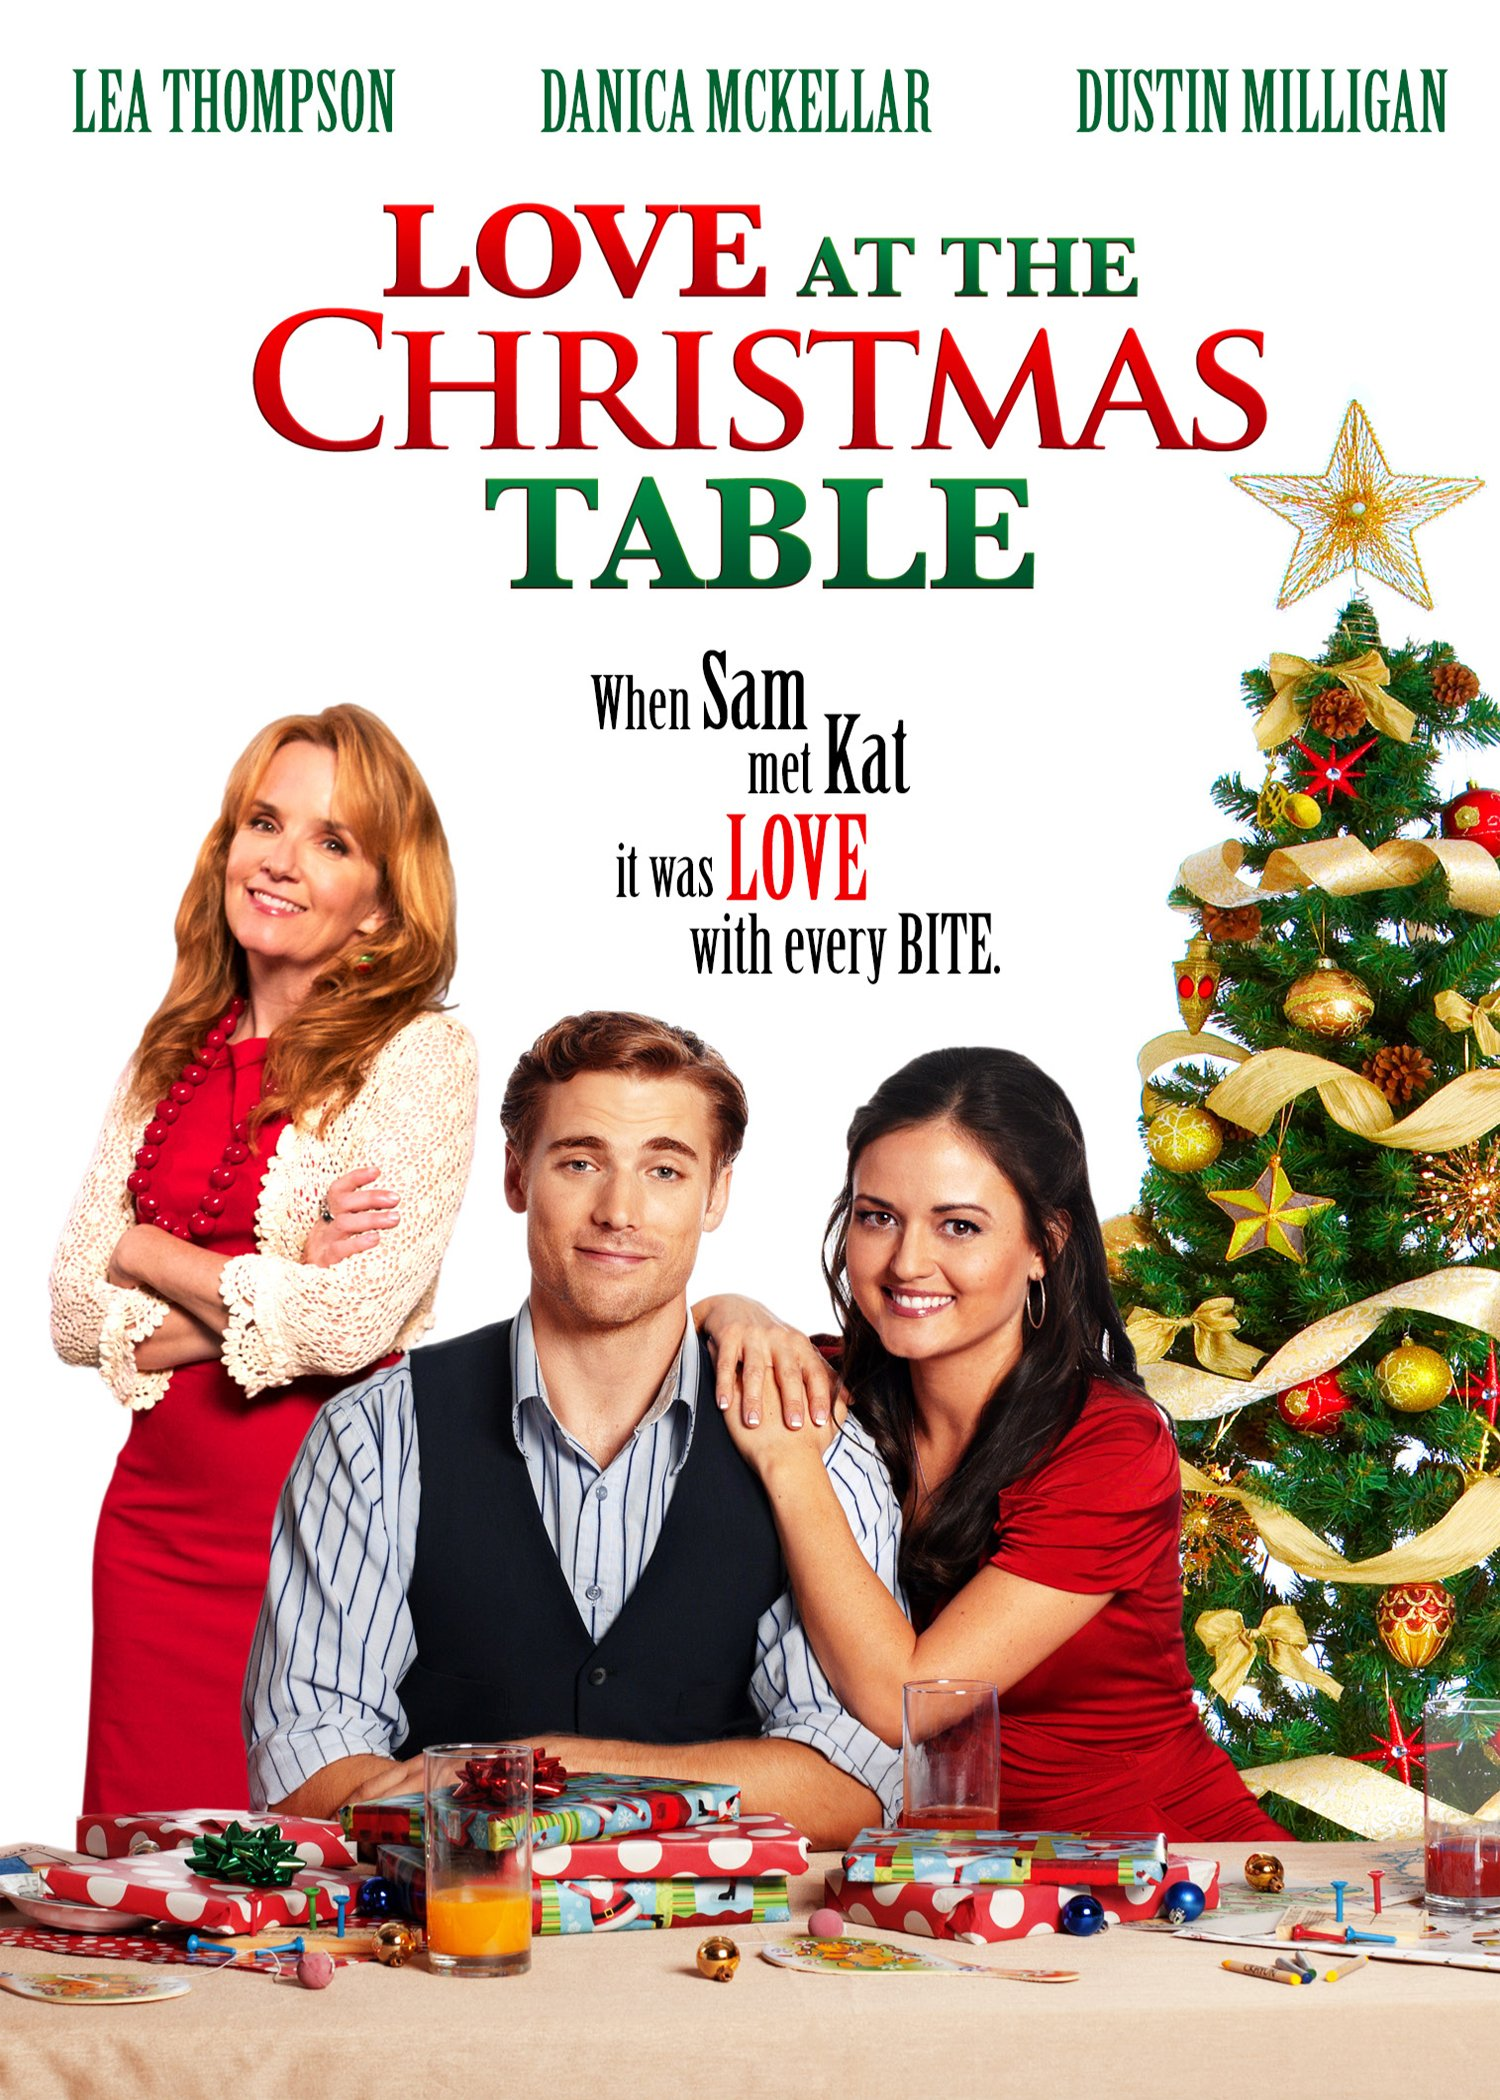 Love at the Christmas Table by Asylum